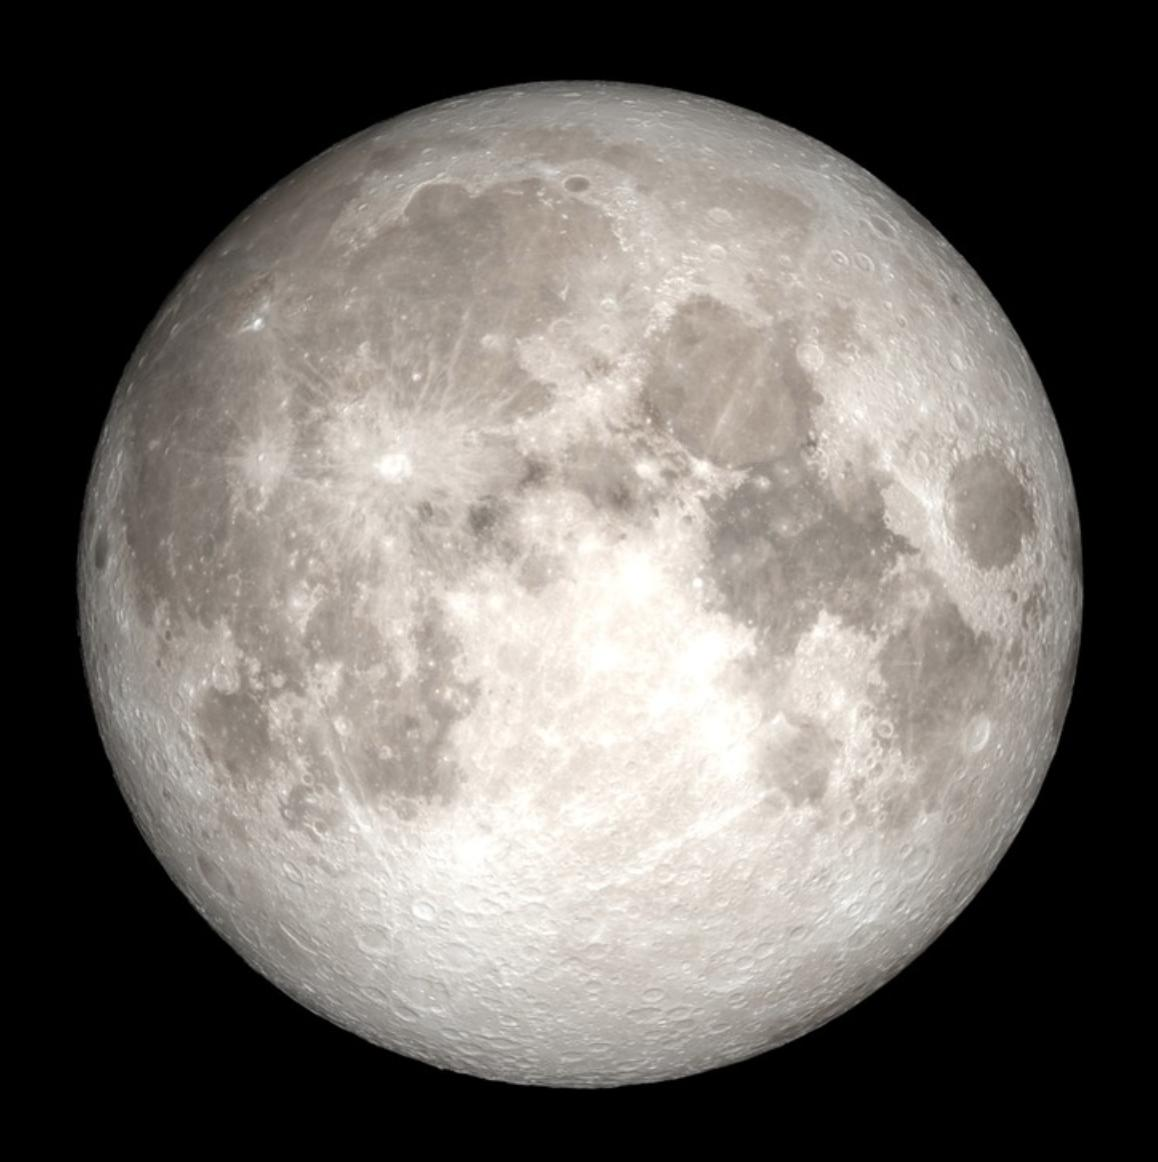 As the first after the summer solstice, tonights full Moon is called Buck Moon or ⛈️THUNDER⛈️ Moon. Below the equator, it's the Ice Moon. And this full Moon is extra special because 50 years ago #OTD #Apollo11 launched! So yall better be celebrating 🎉😉 go.nasa.gov/2NXj8kD